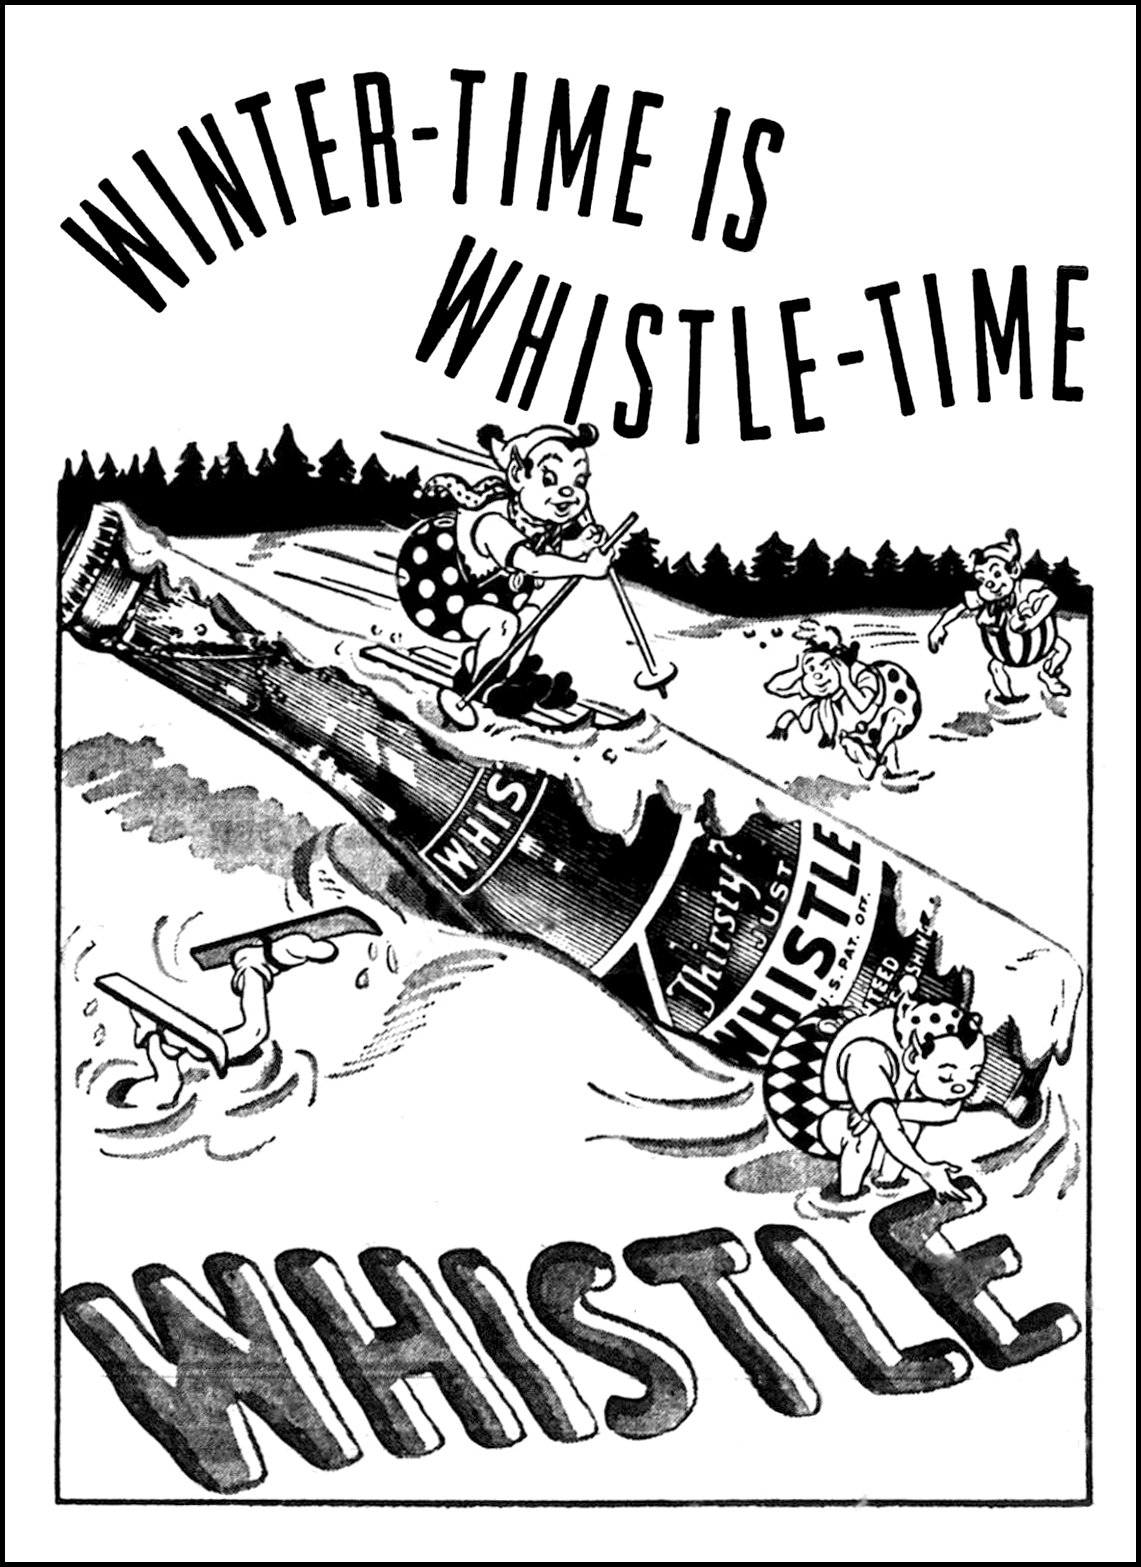 Whistle - published in the Loraine Journal - Loraine, Ohio U.S.A. - December 17, 1947